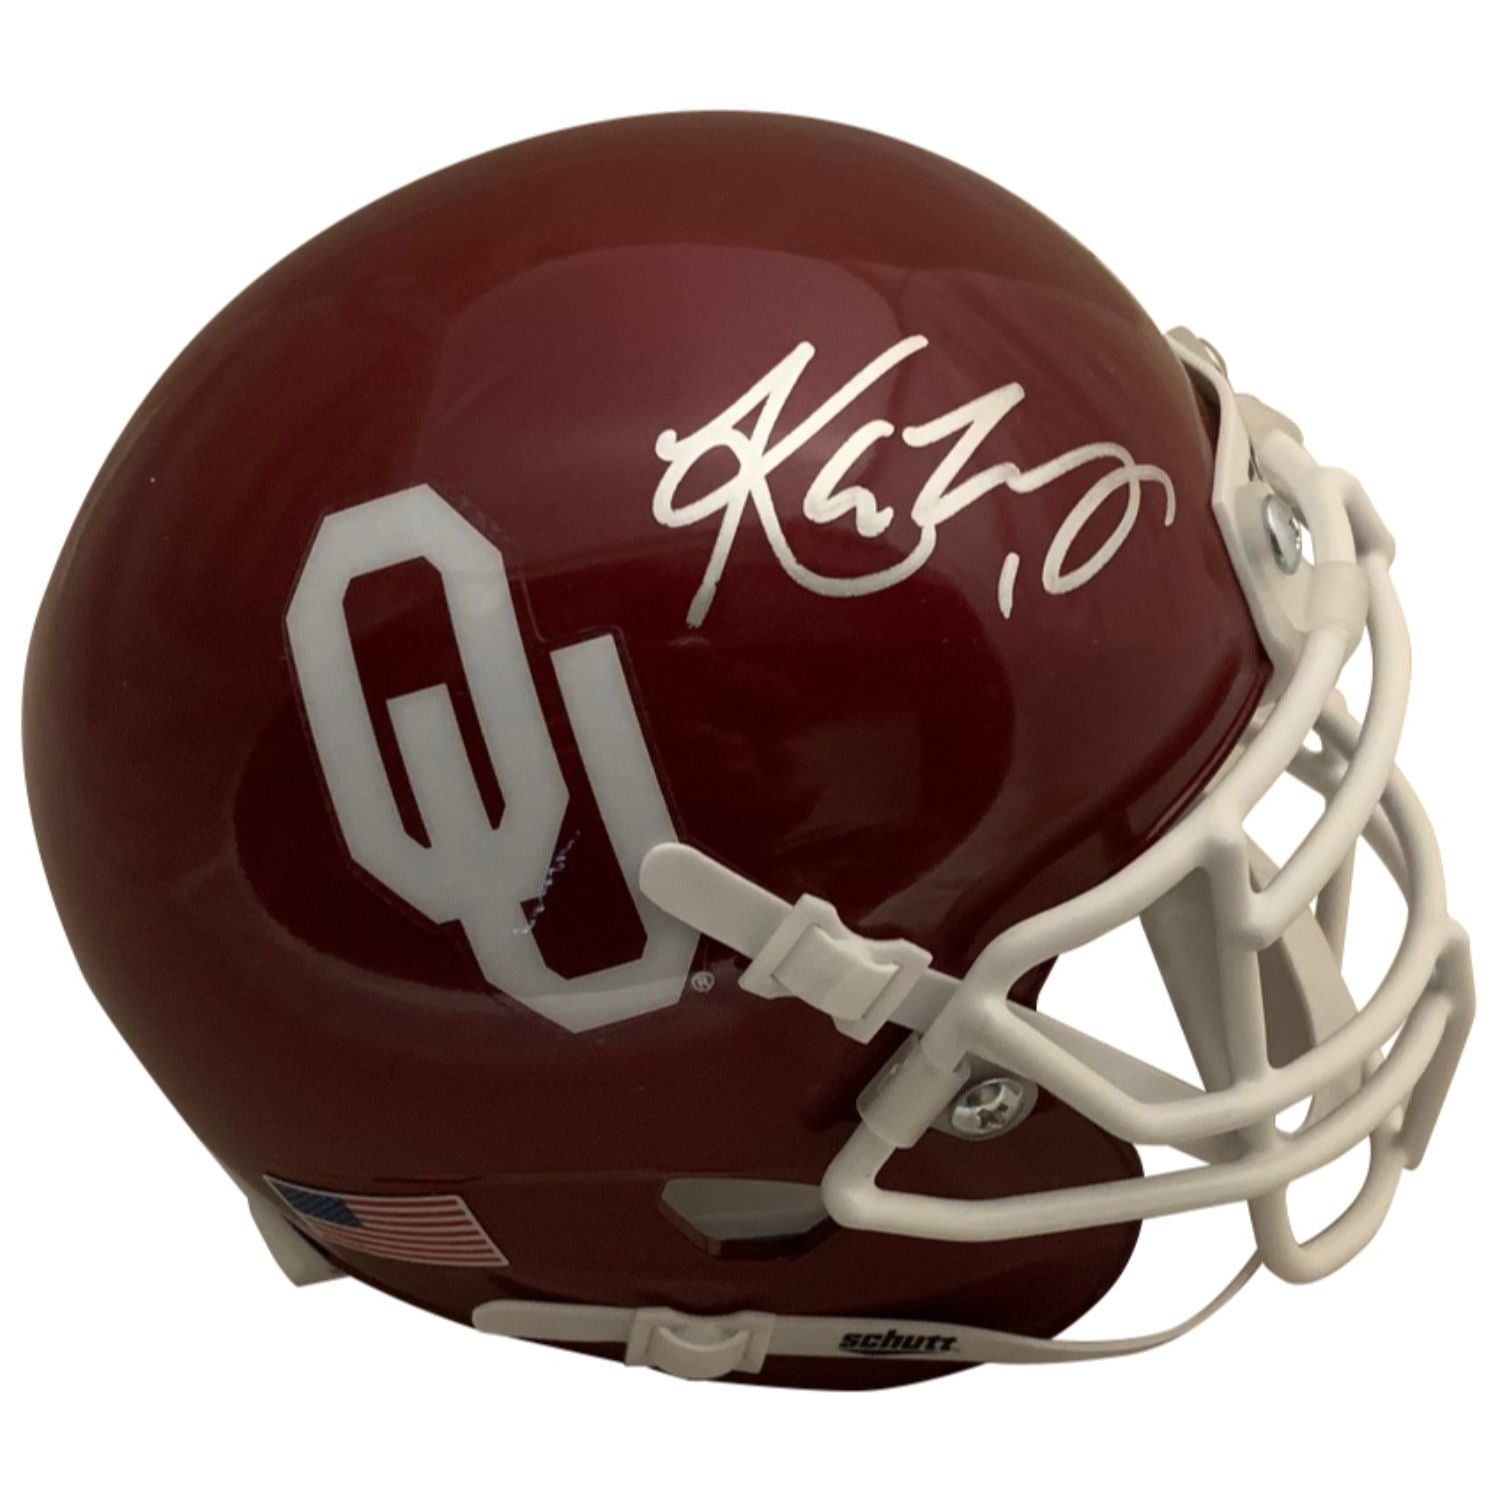 Kyler Murray Autographed Oklahoma Sooners Heisman Trophy Signed Football Mini Helmet PSA DNA COA-Powers Sports Memorabilia